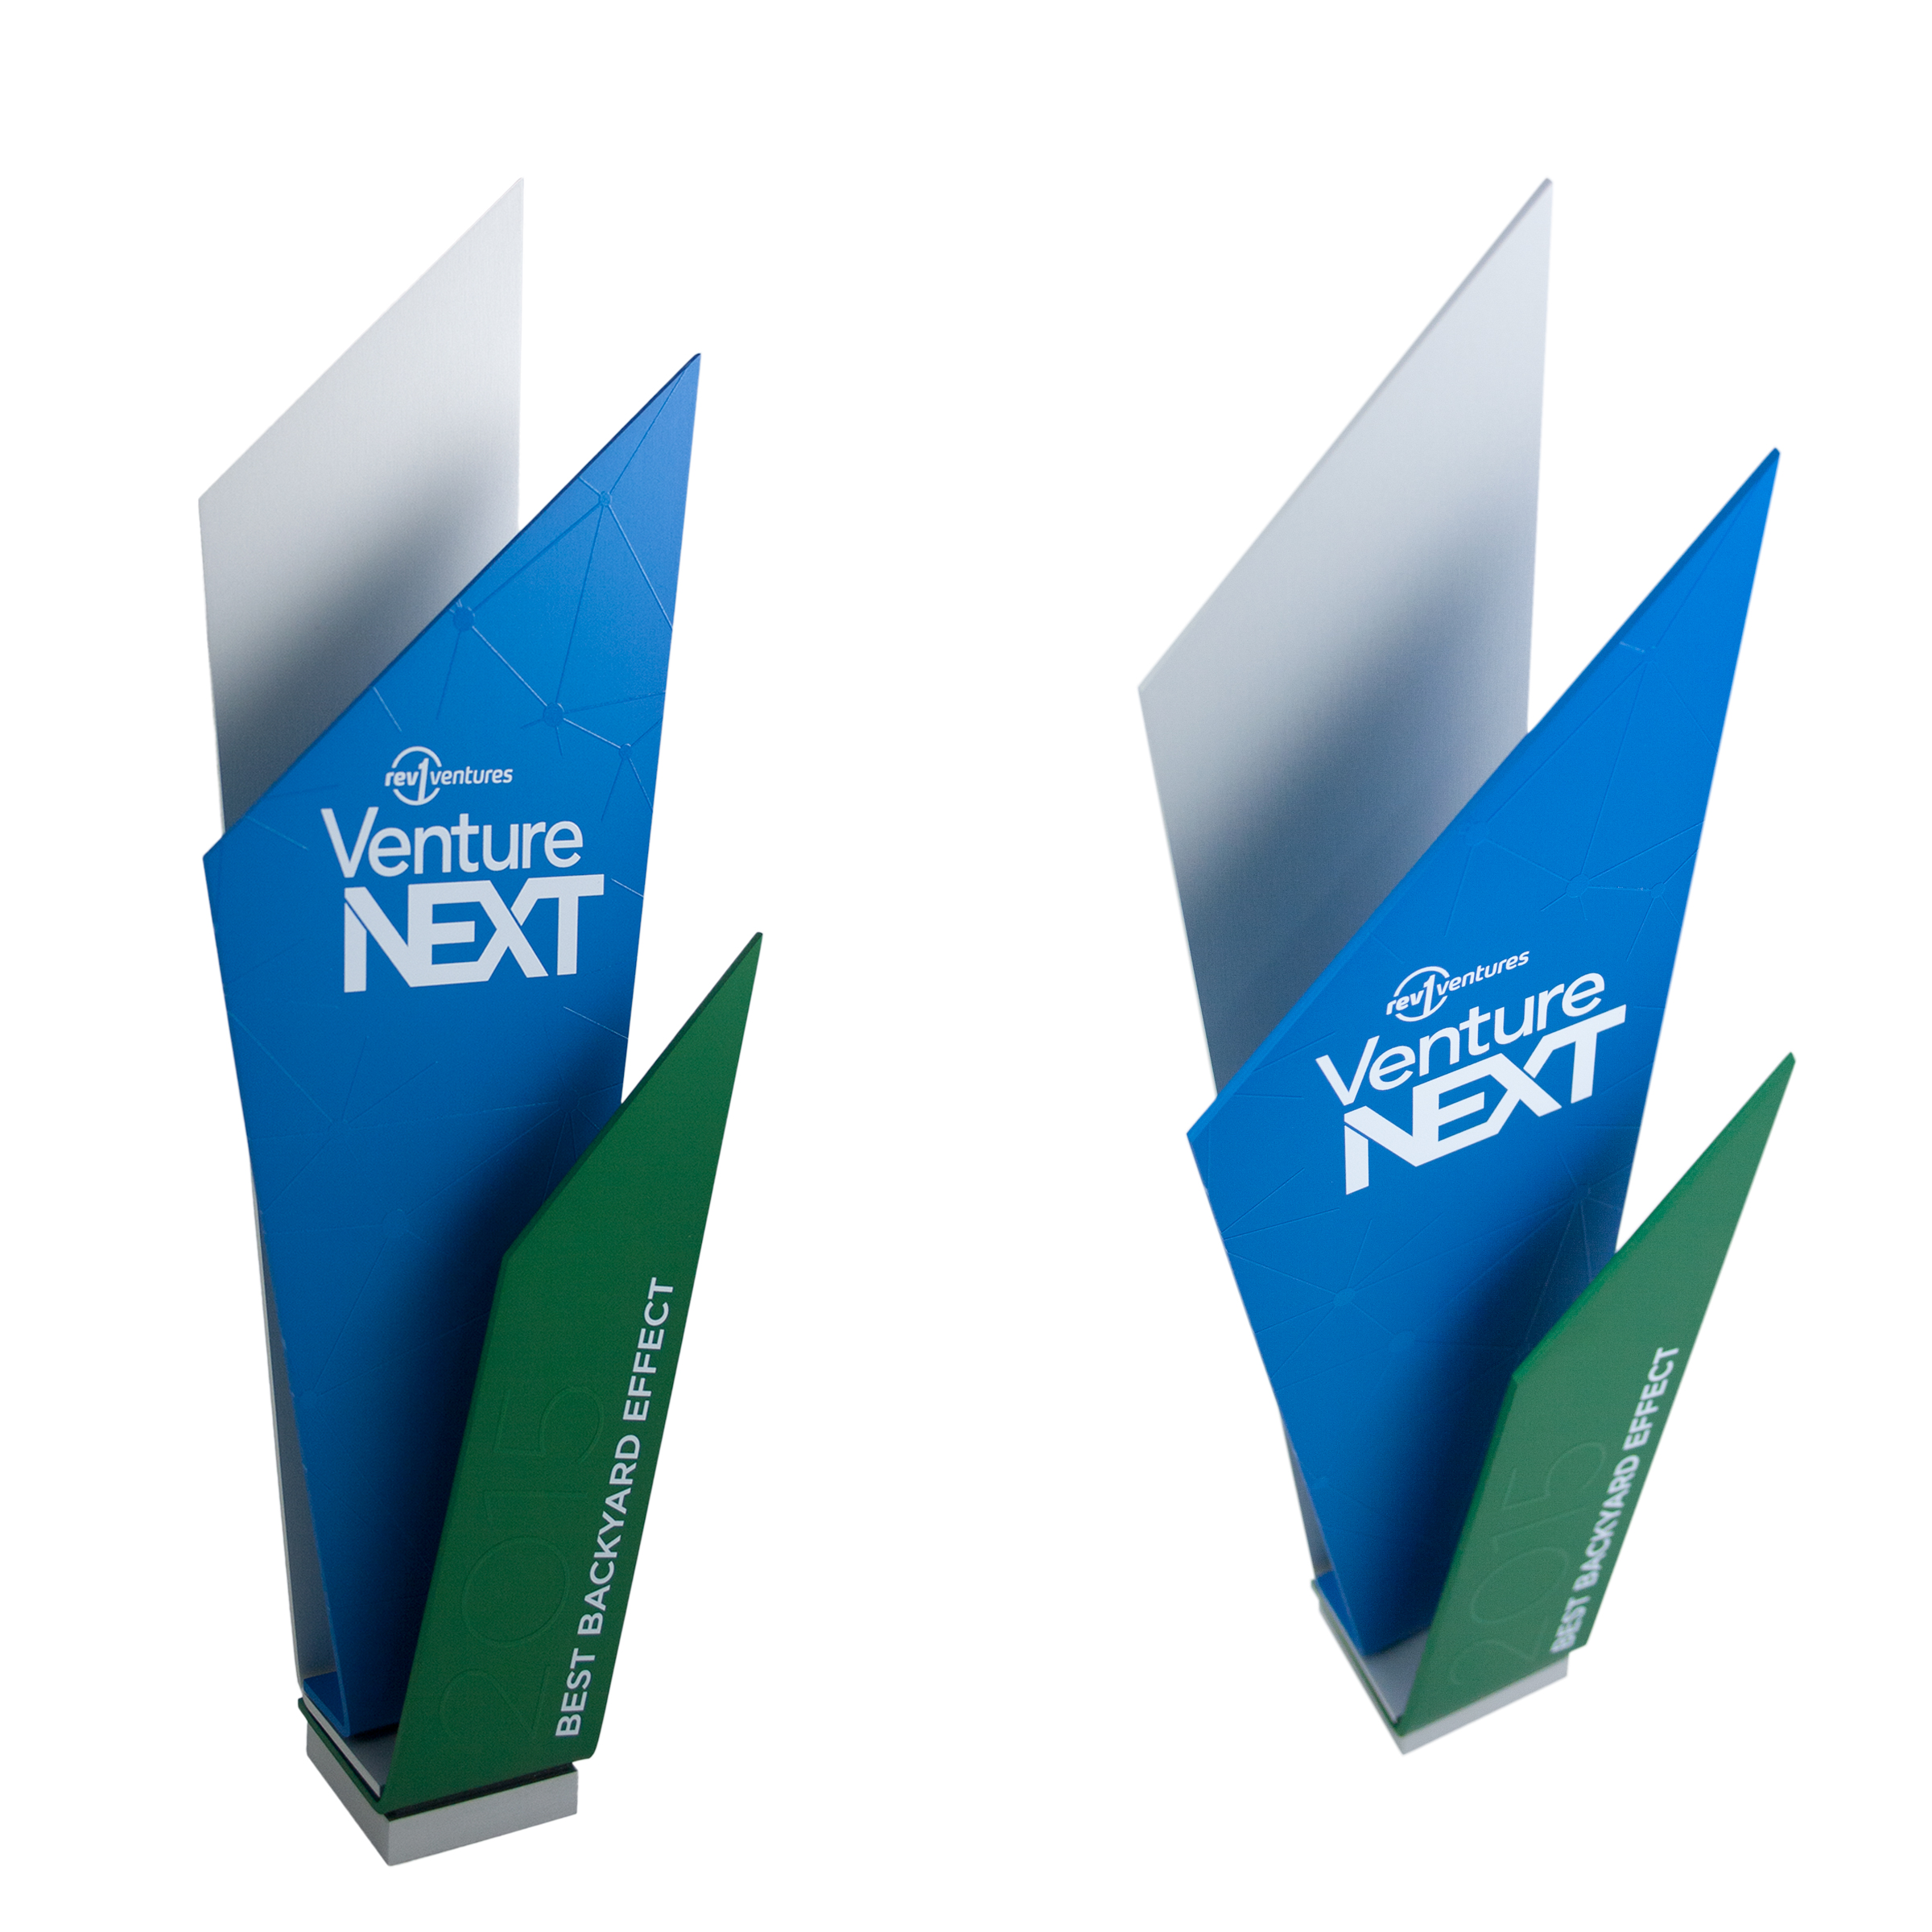 venture-next-technology-business-investment-awards-custom-modern-unique-creative-wow-aluminium comp